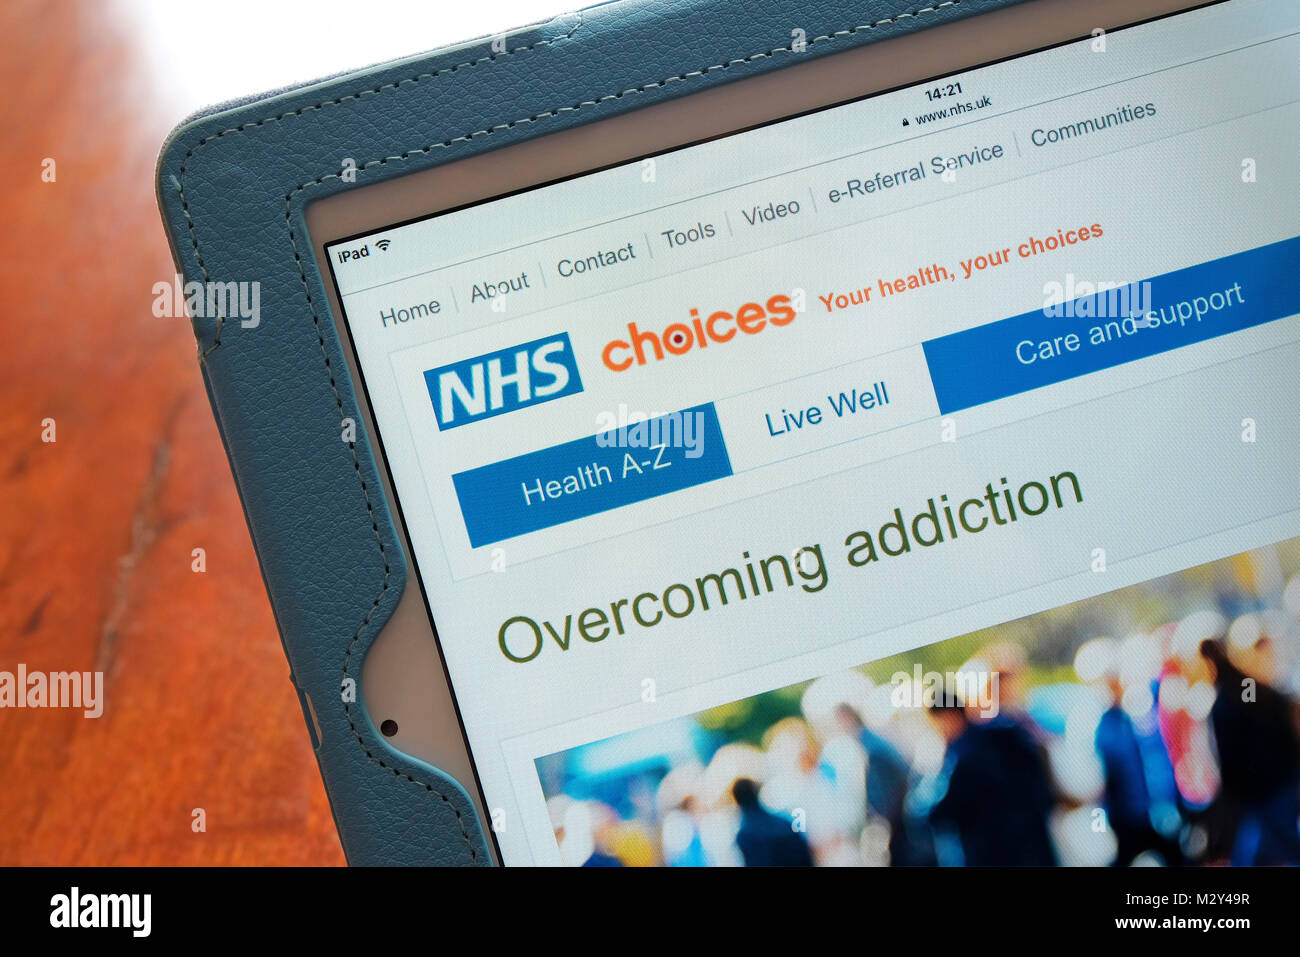 nhs online overcoming addiction website homepage - Stock Image